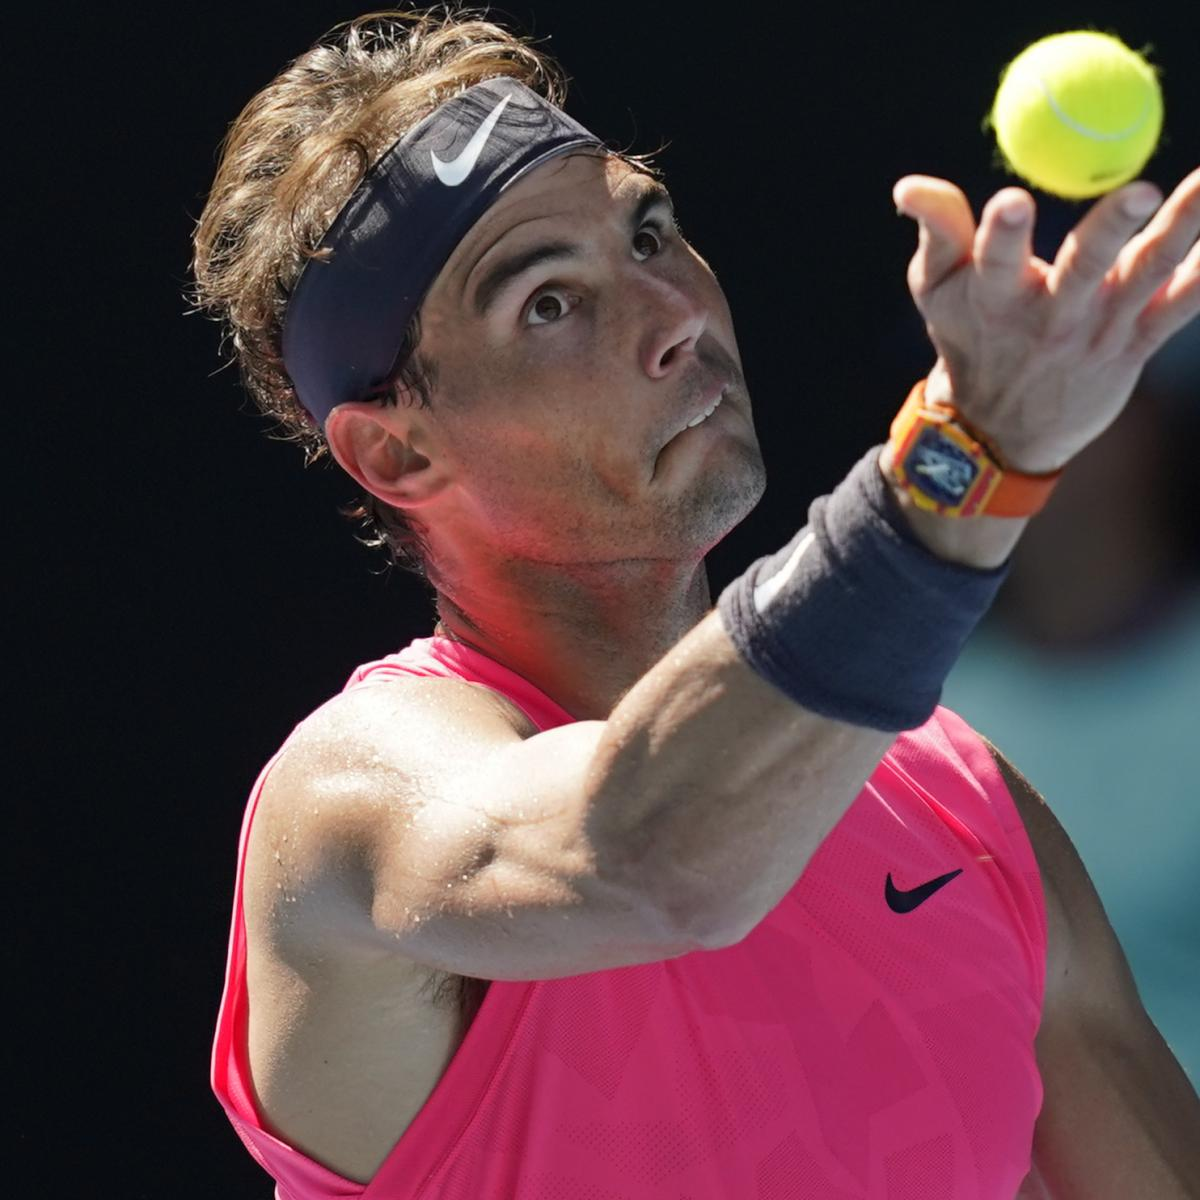 Australian Open 2020: Tuesday Results, Highlights, Scores Recap from Melbourne